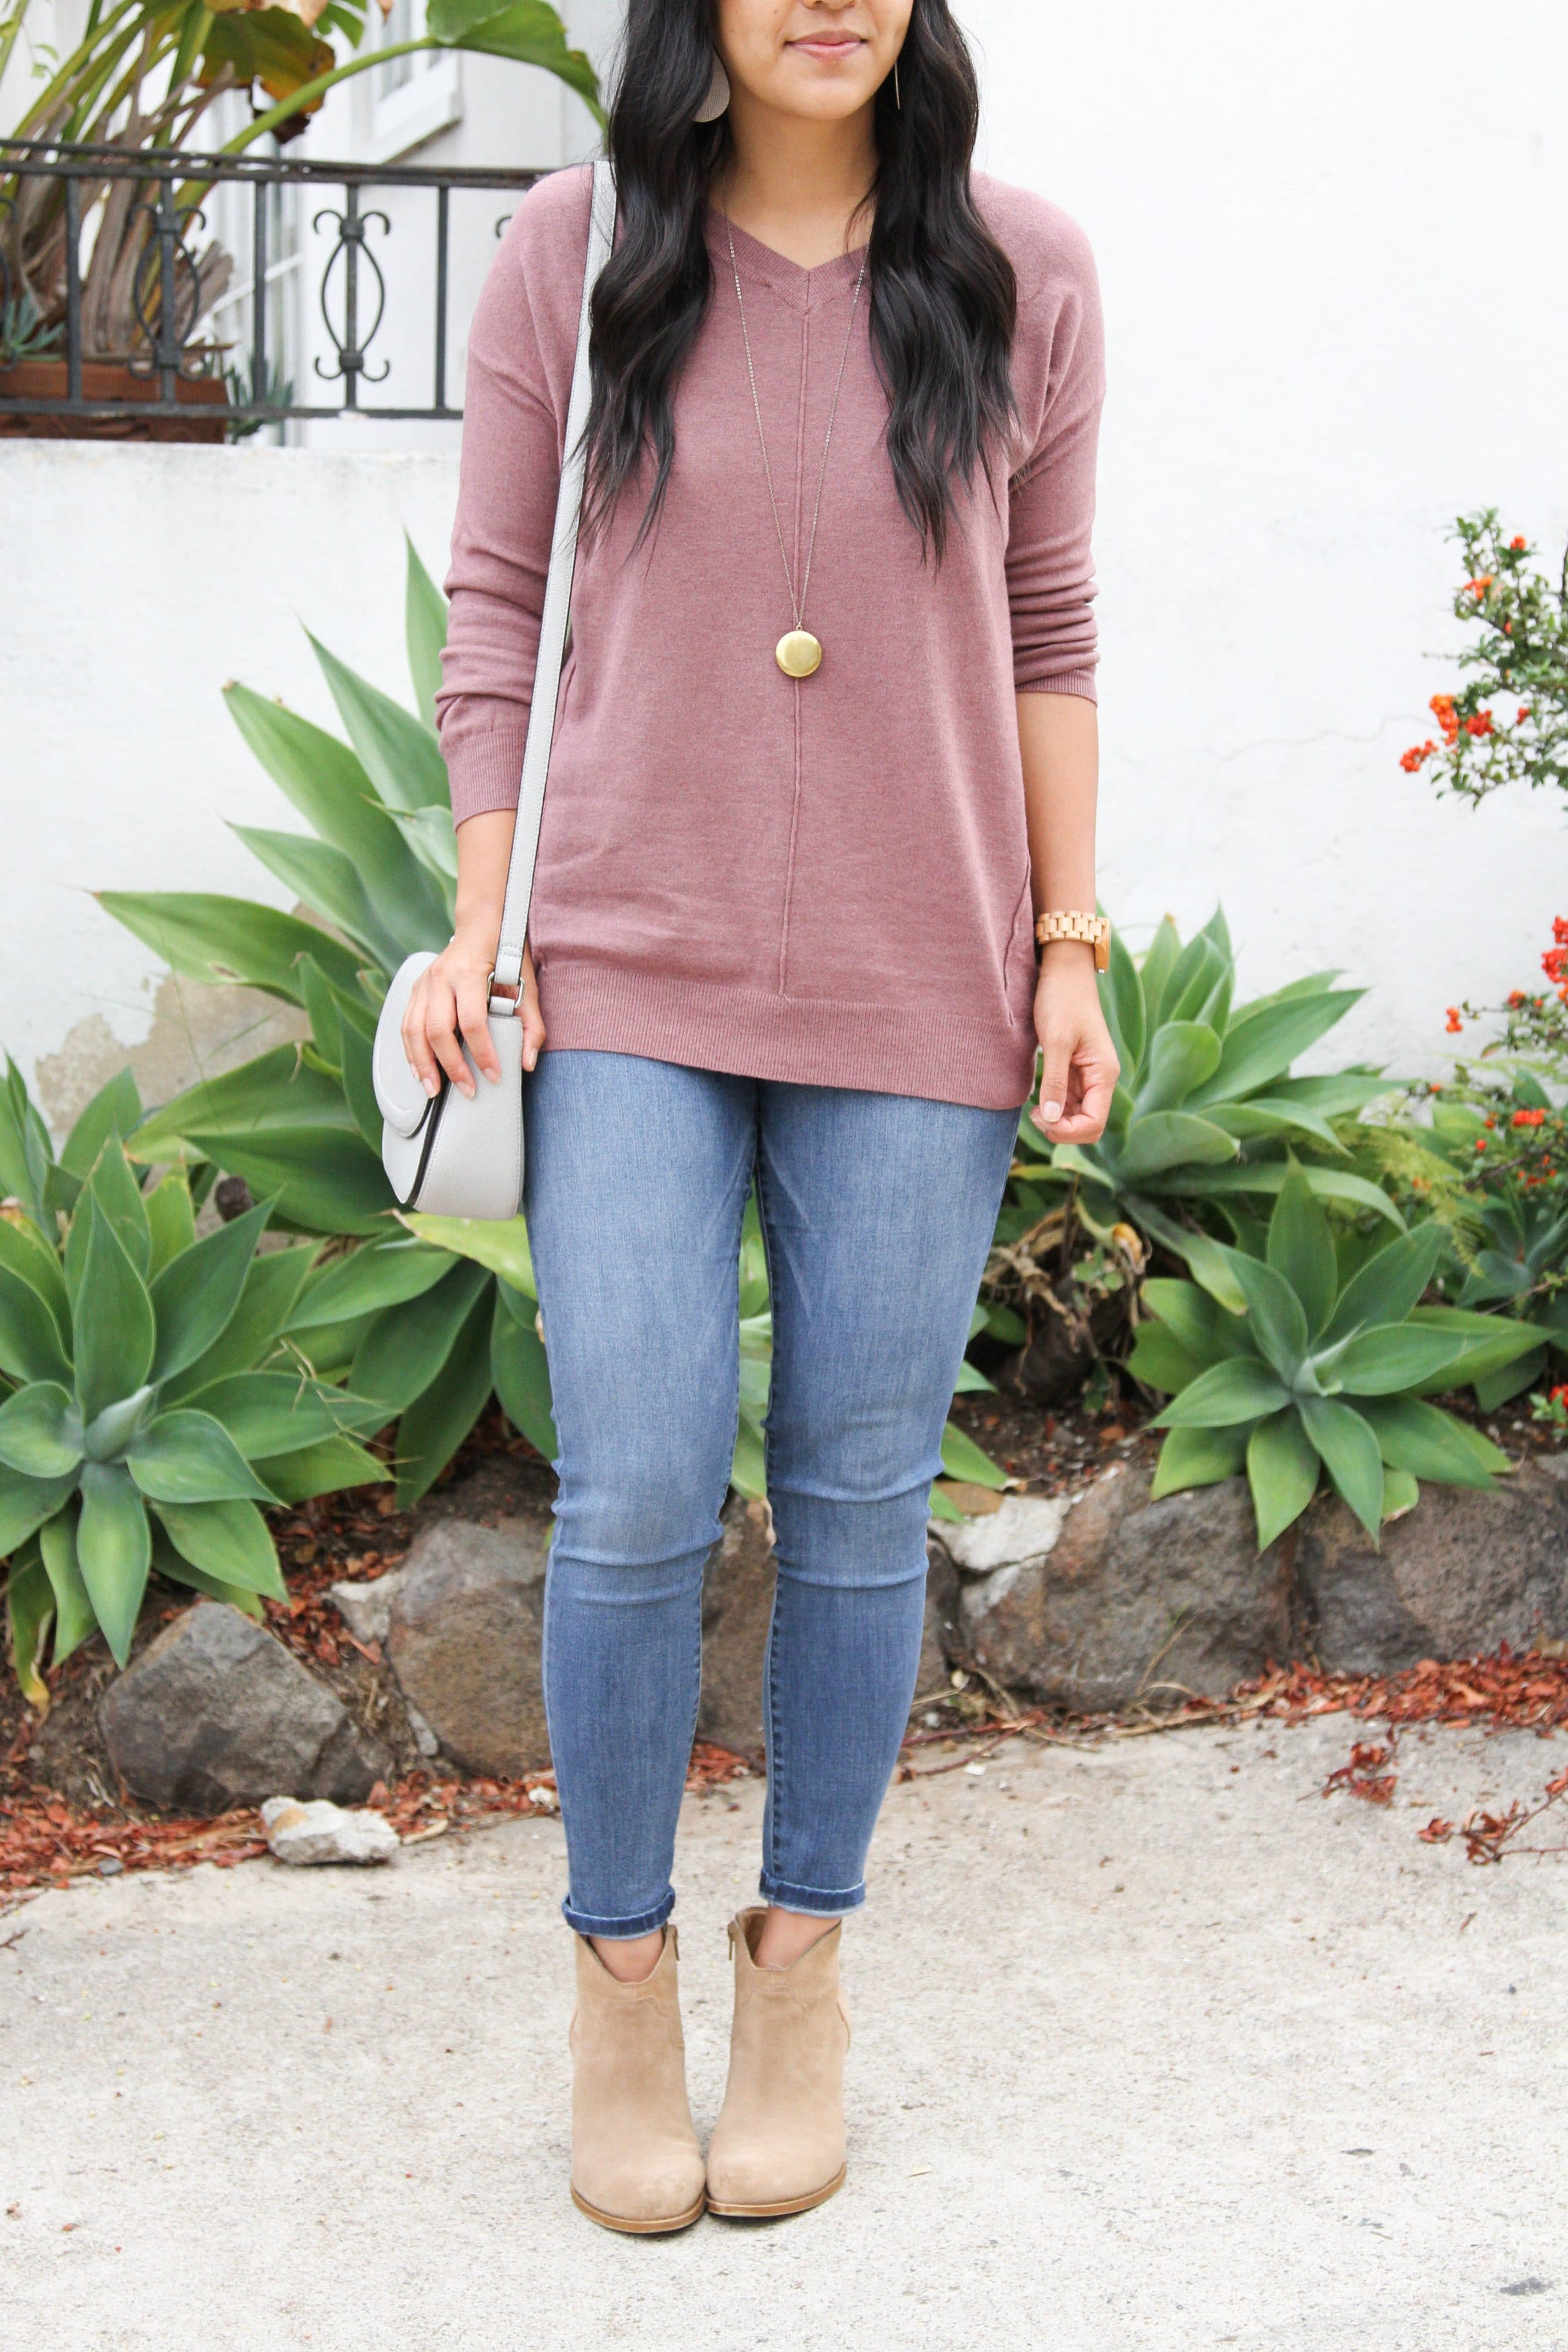 Mauve Sweater + Skinnies + Taupe Booties + Pendant Necklace